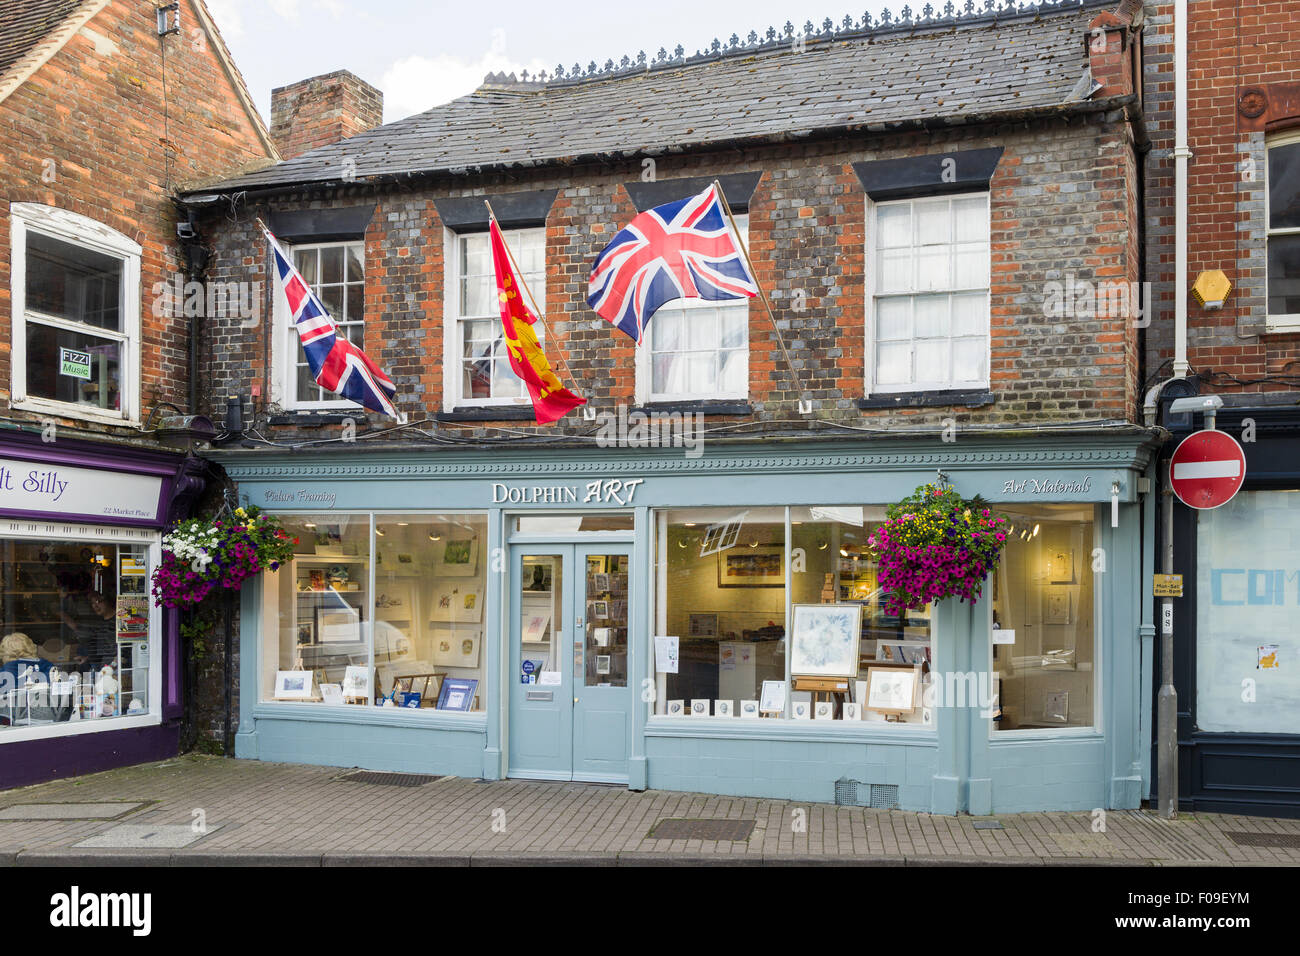 The Dolphin Gallery, Market Place, Wantage, Oxfordshire, UK. - Stock Image